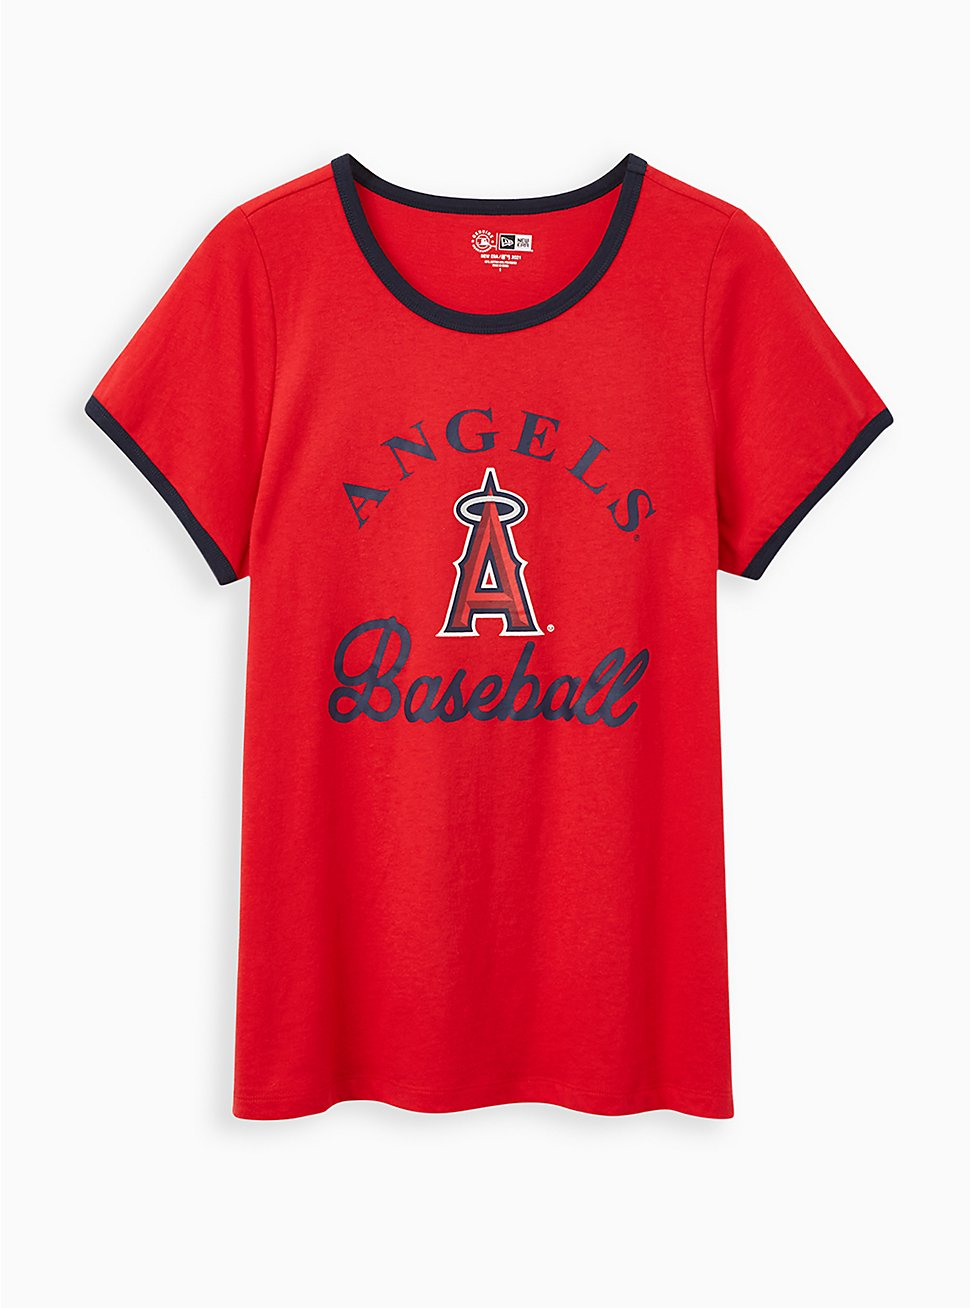 Classic Fit Ringer Tee - MLB Los Angeles Angels Red, RED, hi-res